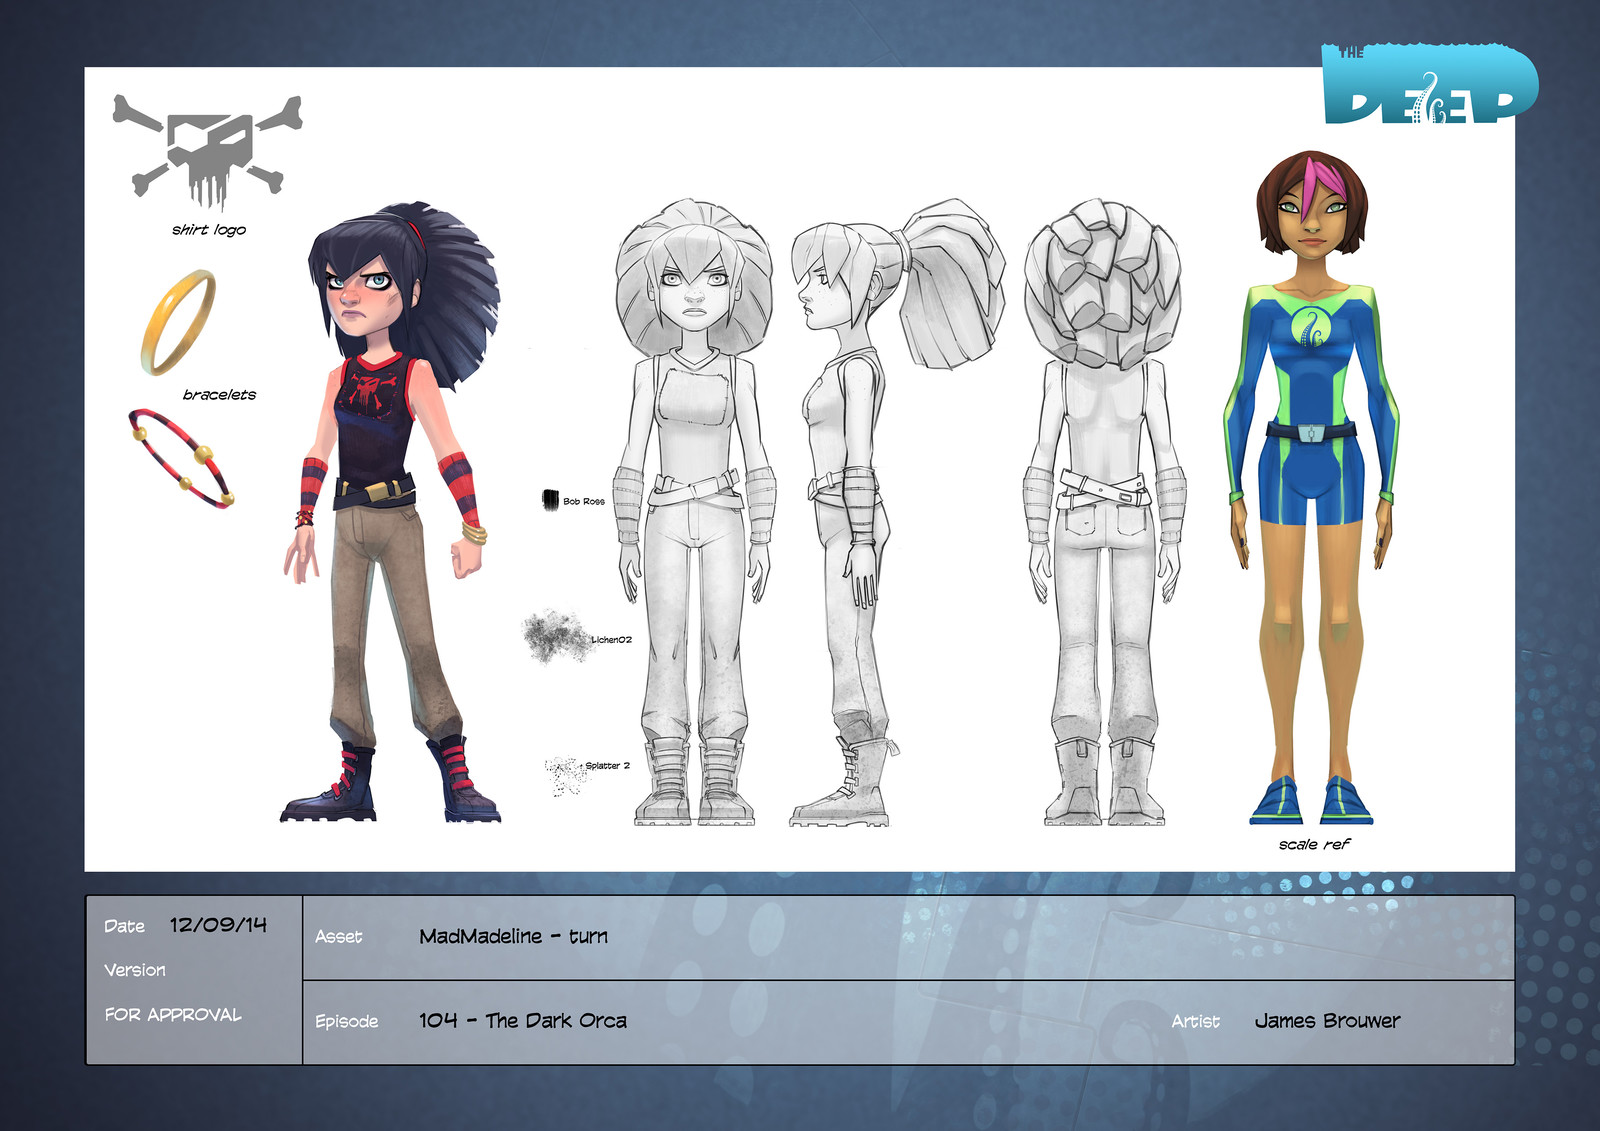 Final character design for Mad Madeline.